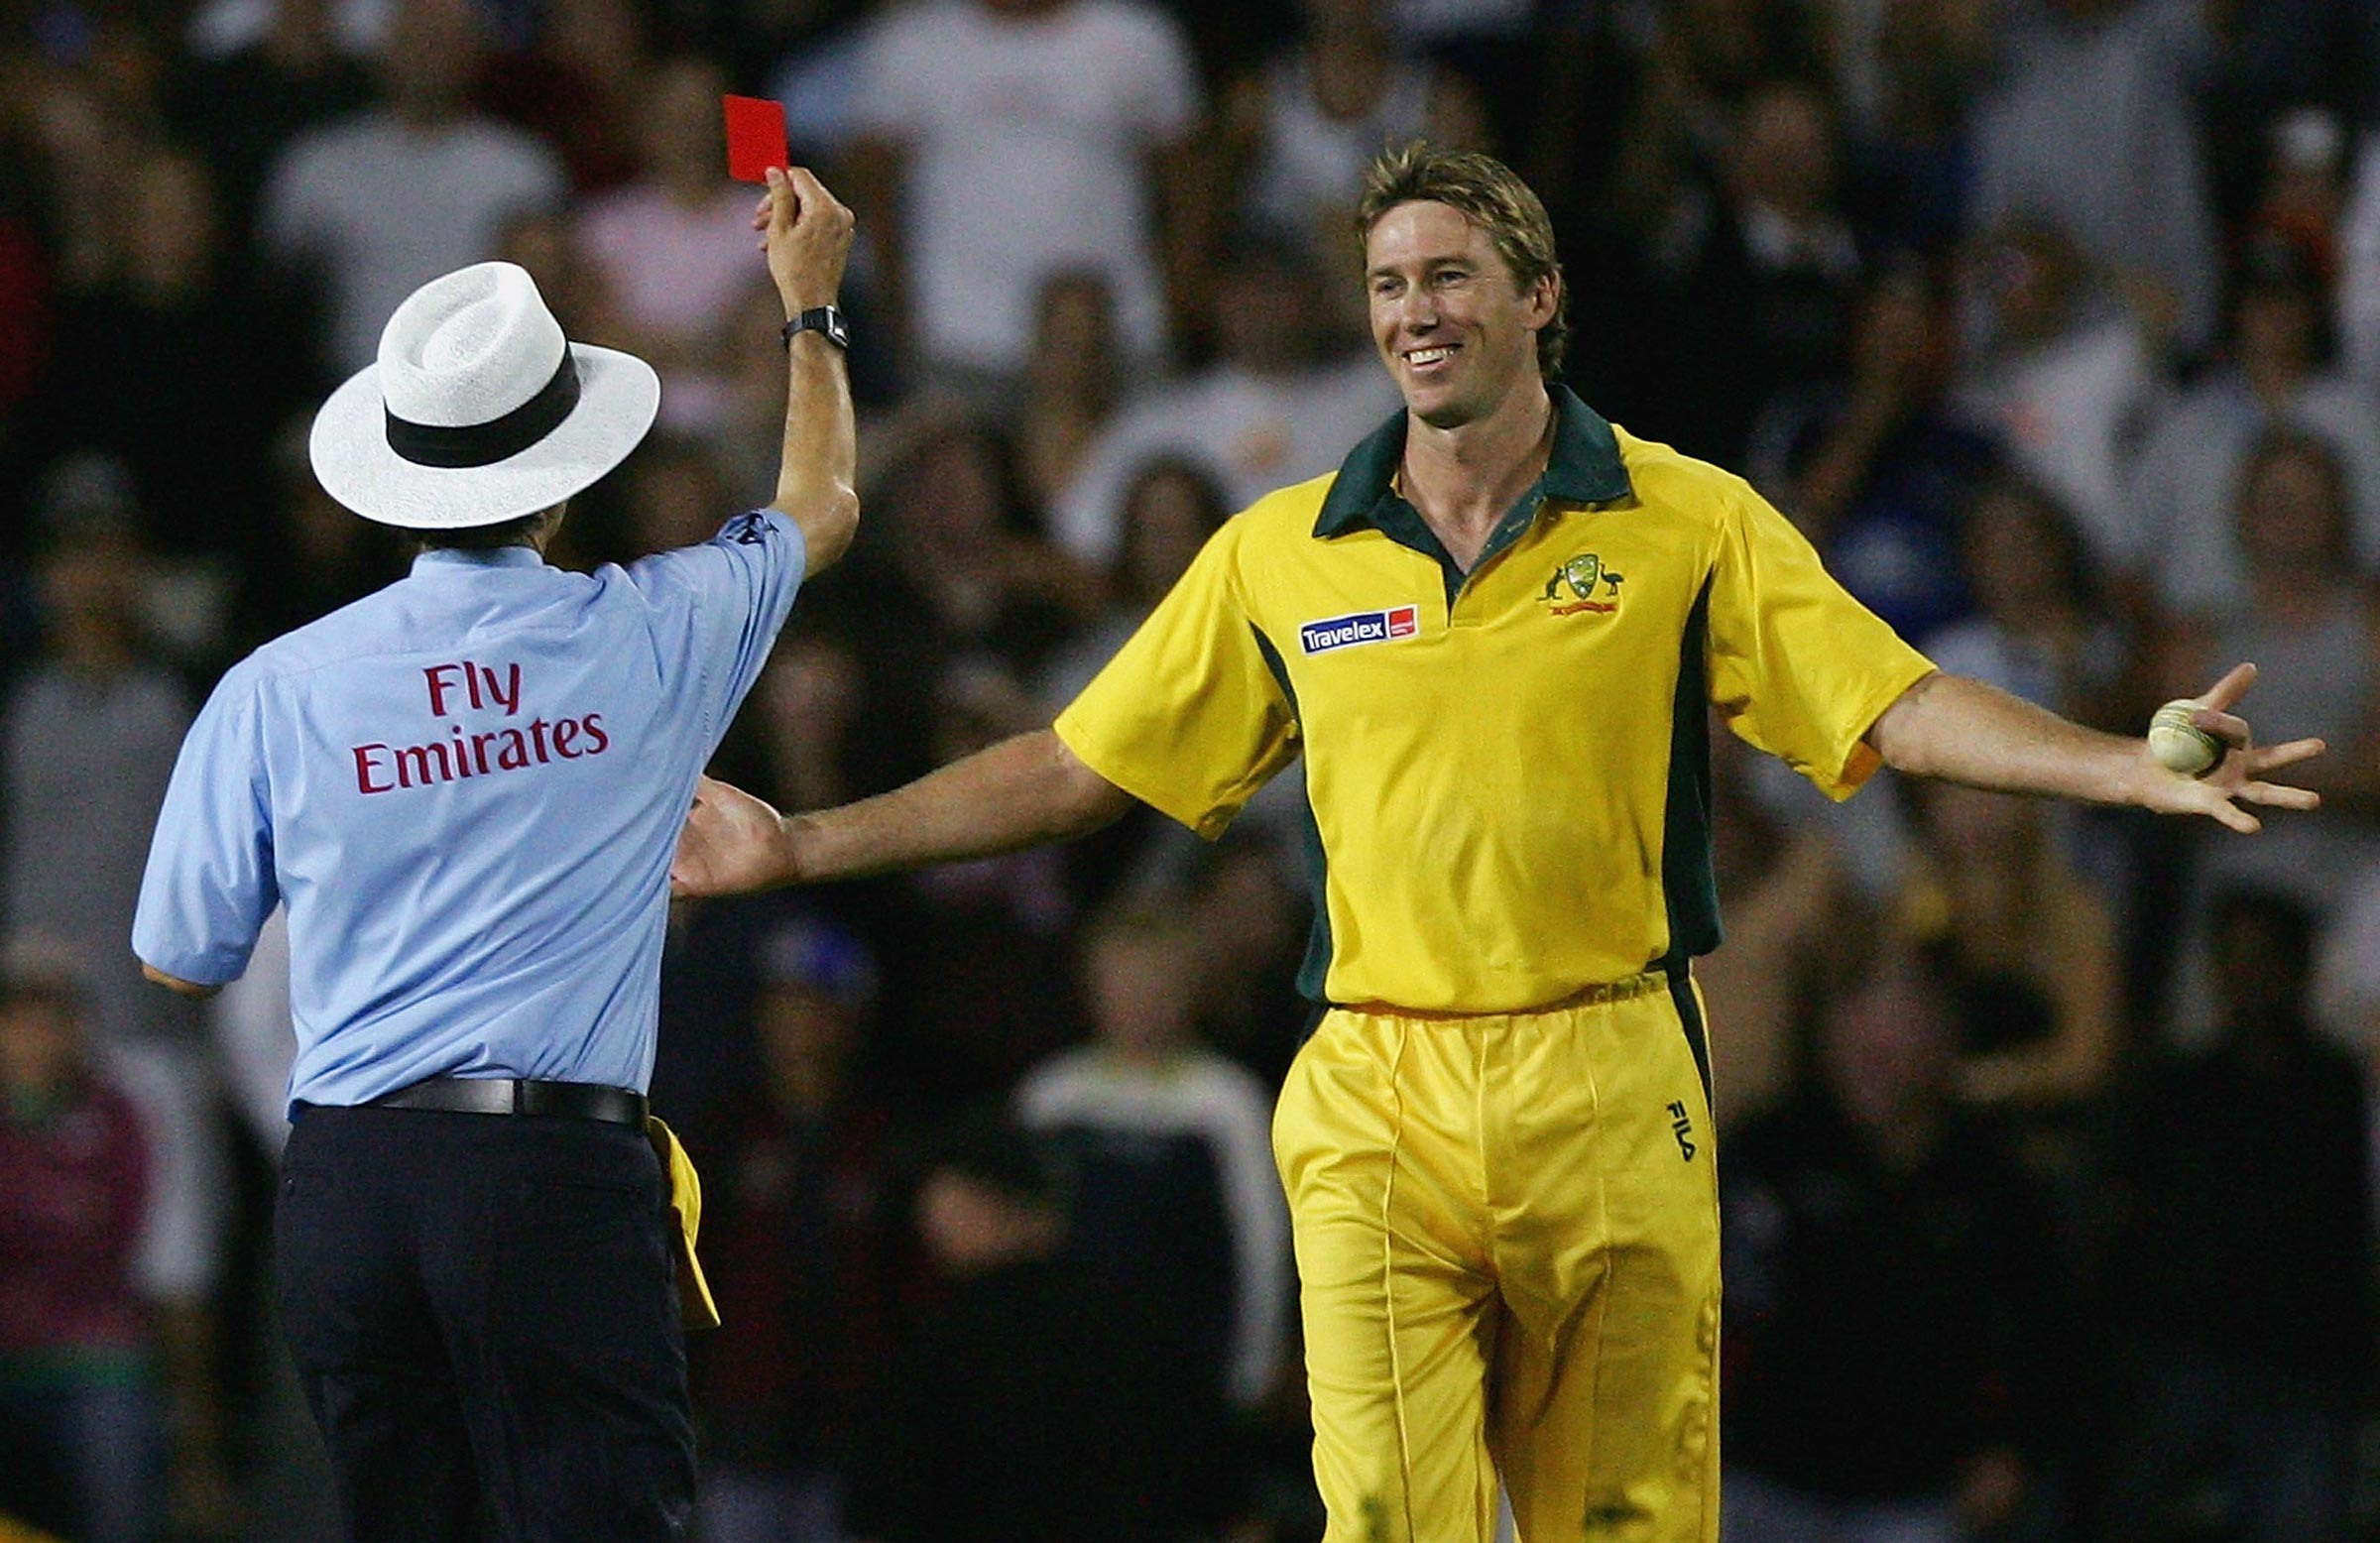 mcgrath Red card - What are the new umpiring signals to send off cricketers?